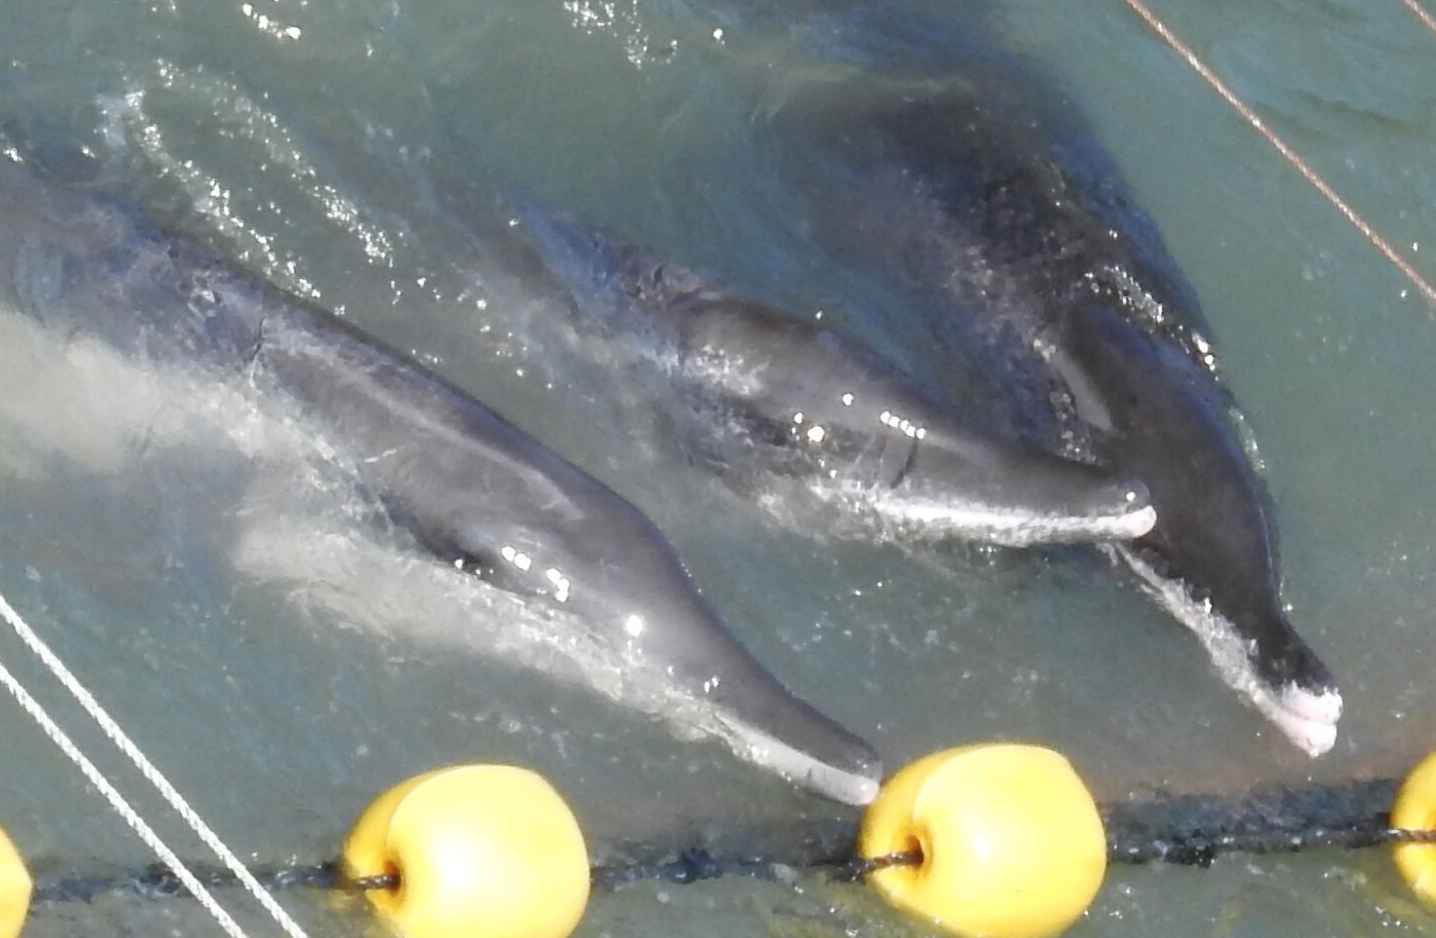 Rough-toothed dolphins driven into the cove, Taiji, Japan